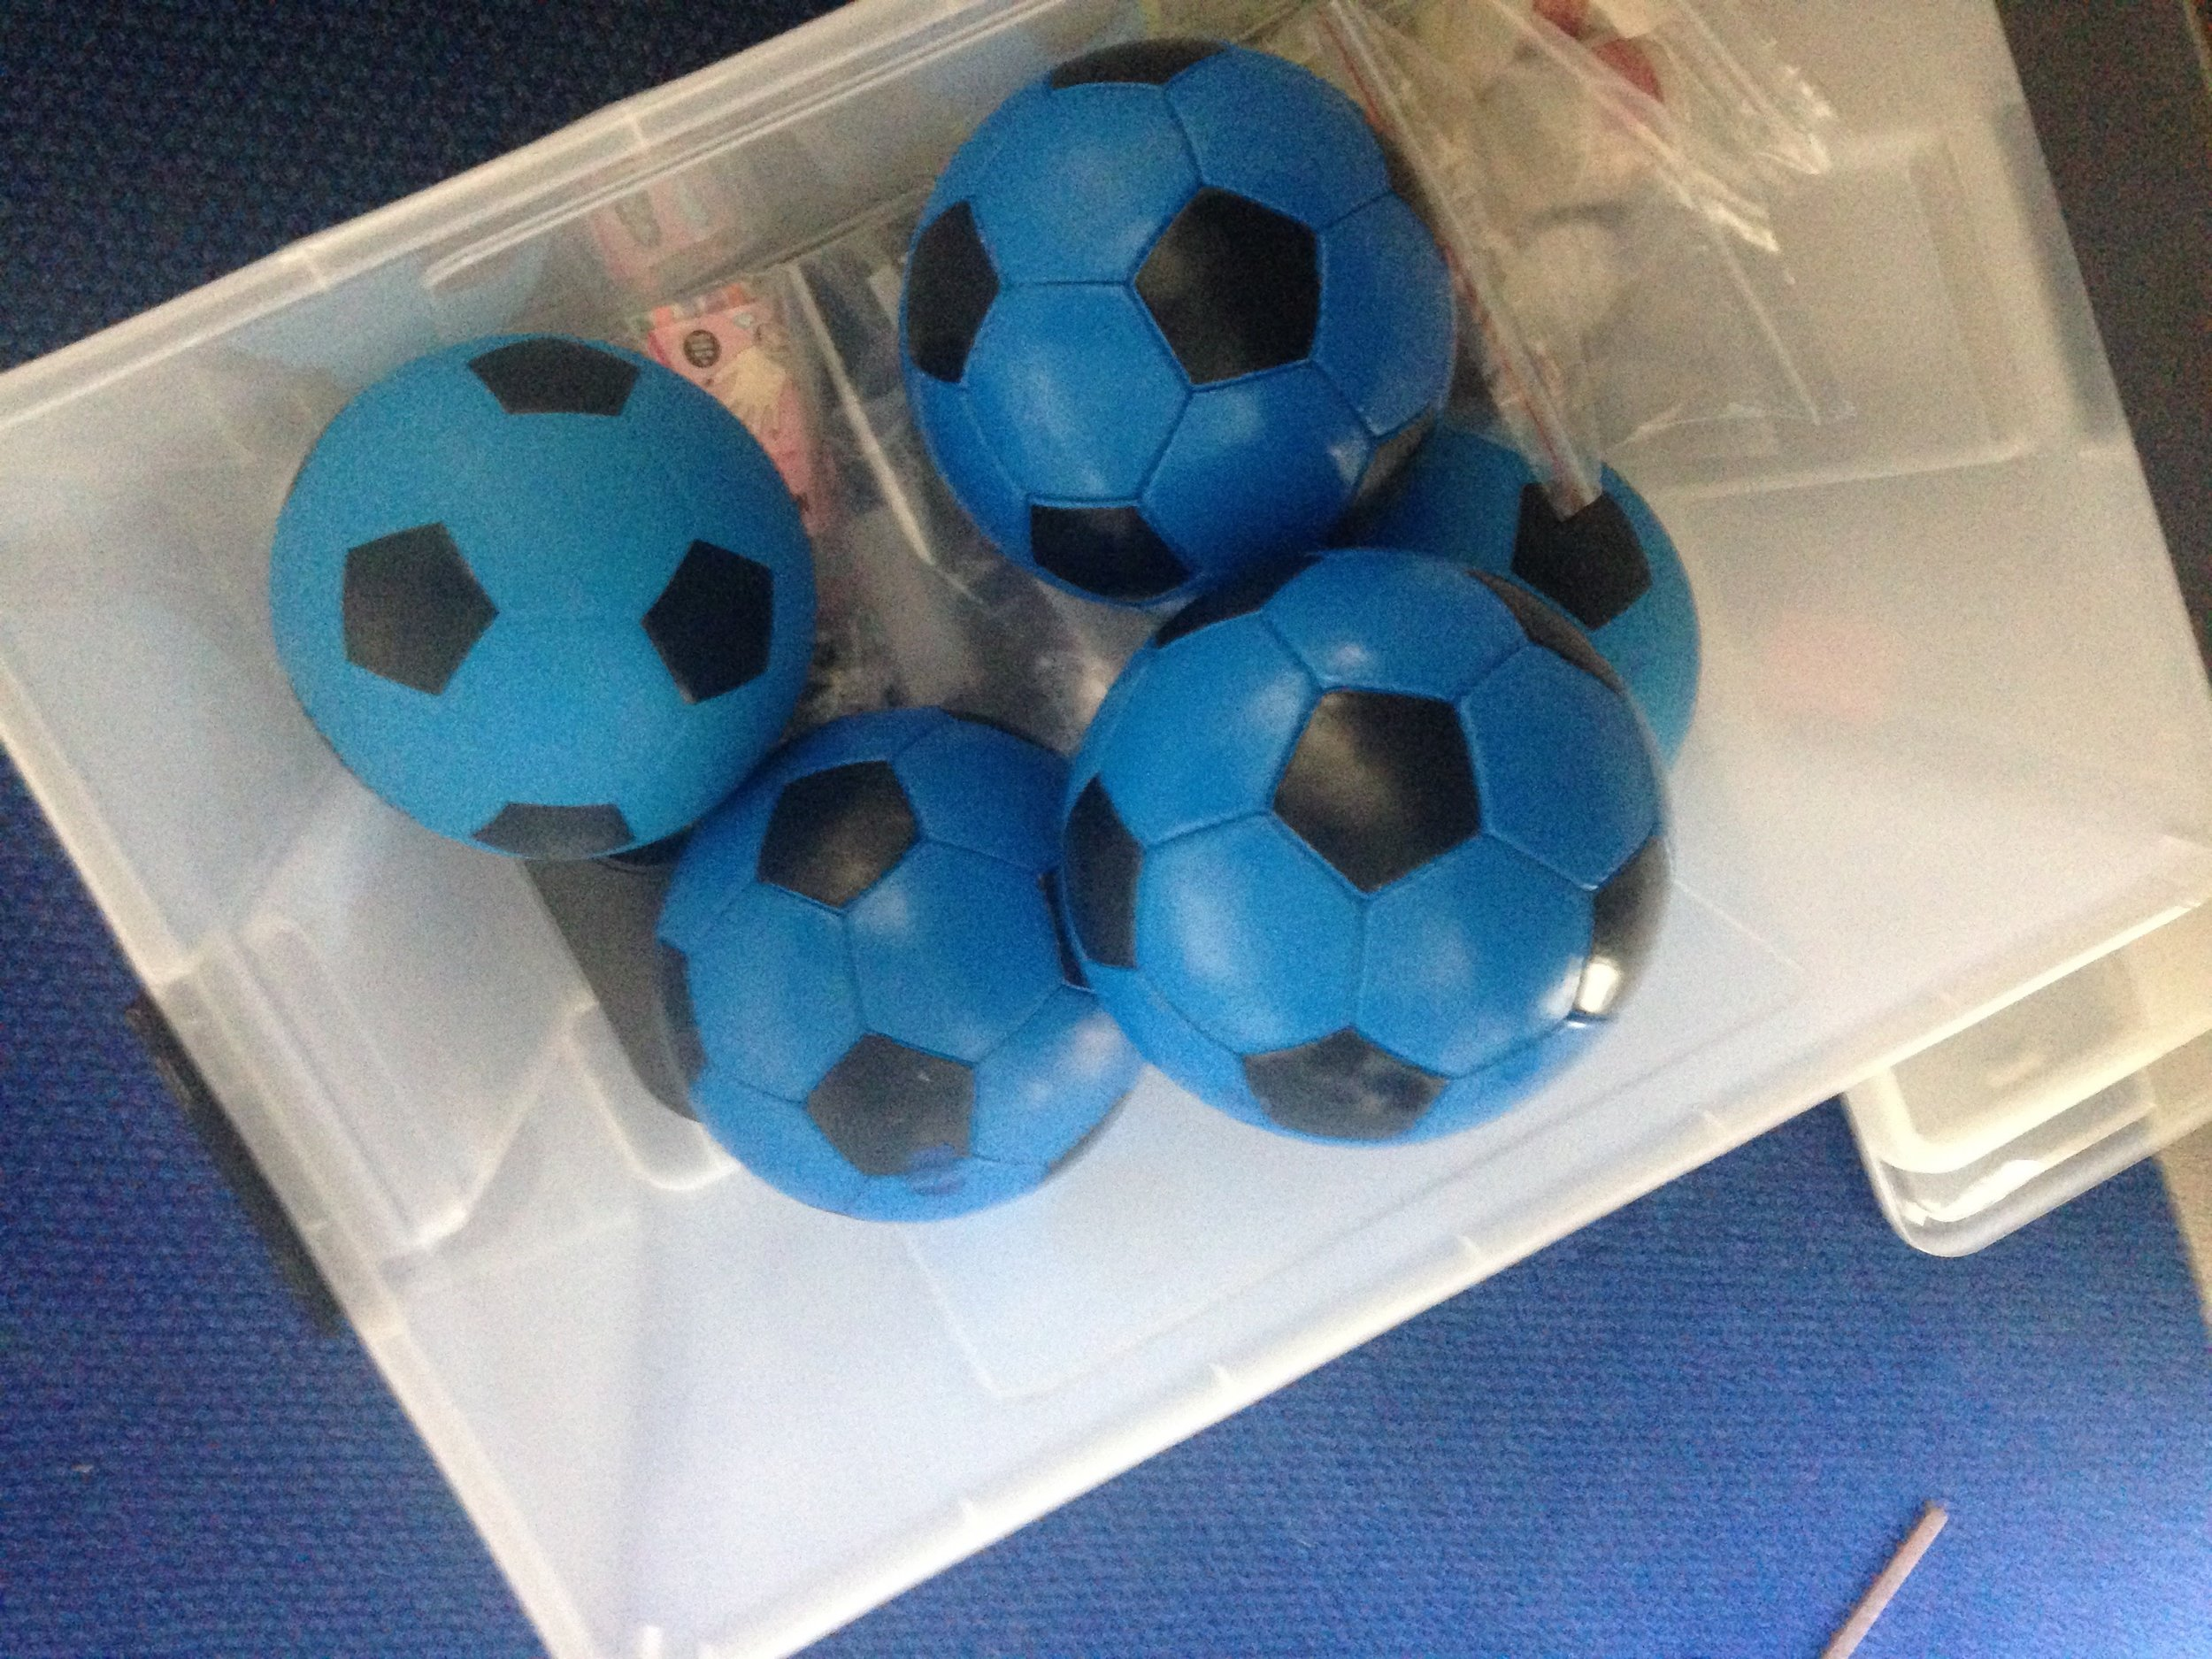 Soft and regular soccer balls that I painted